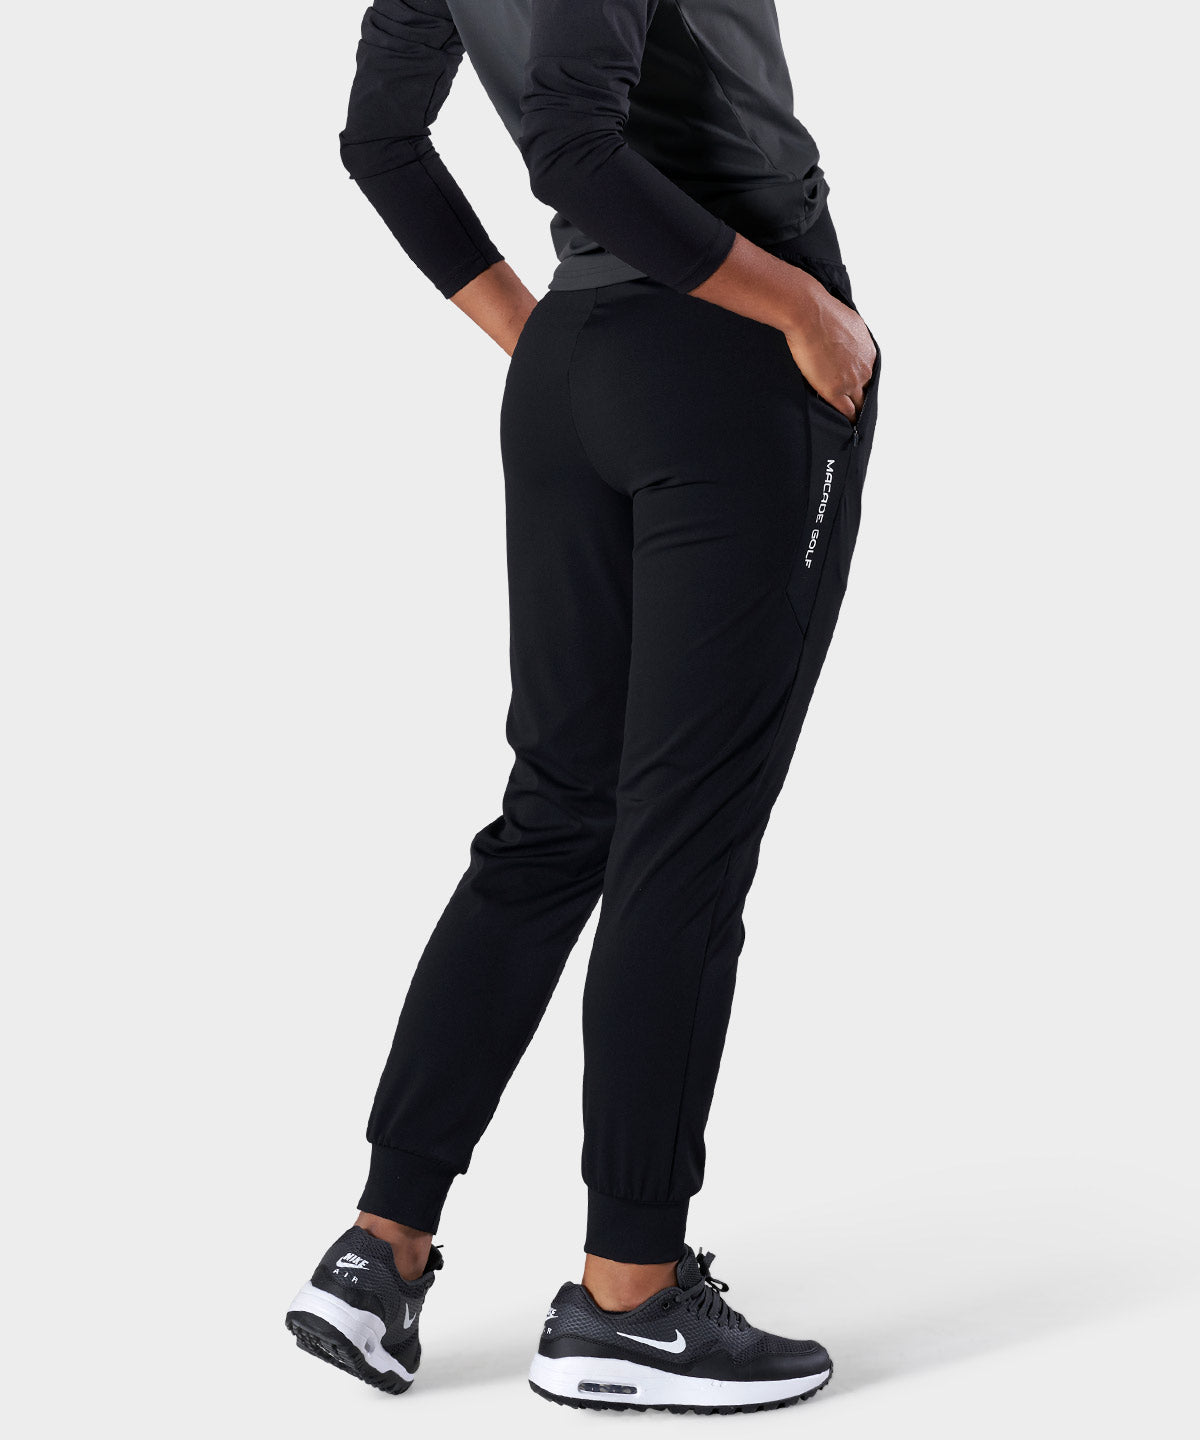 Black Tapered Range Pants